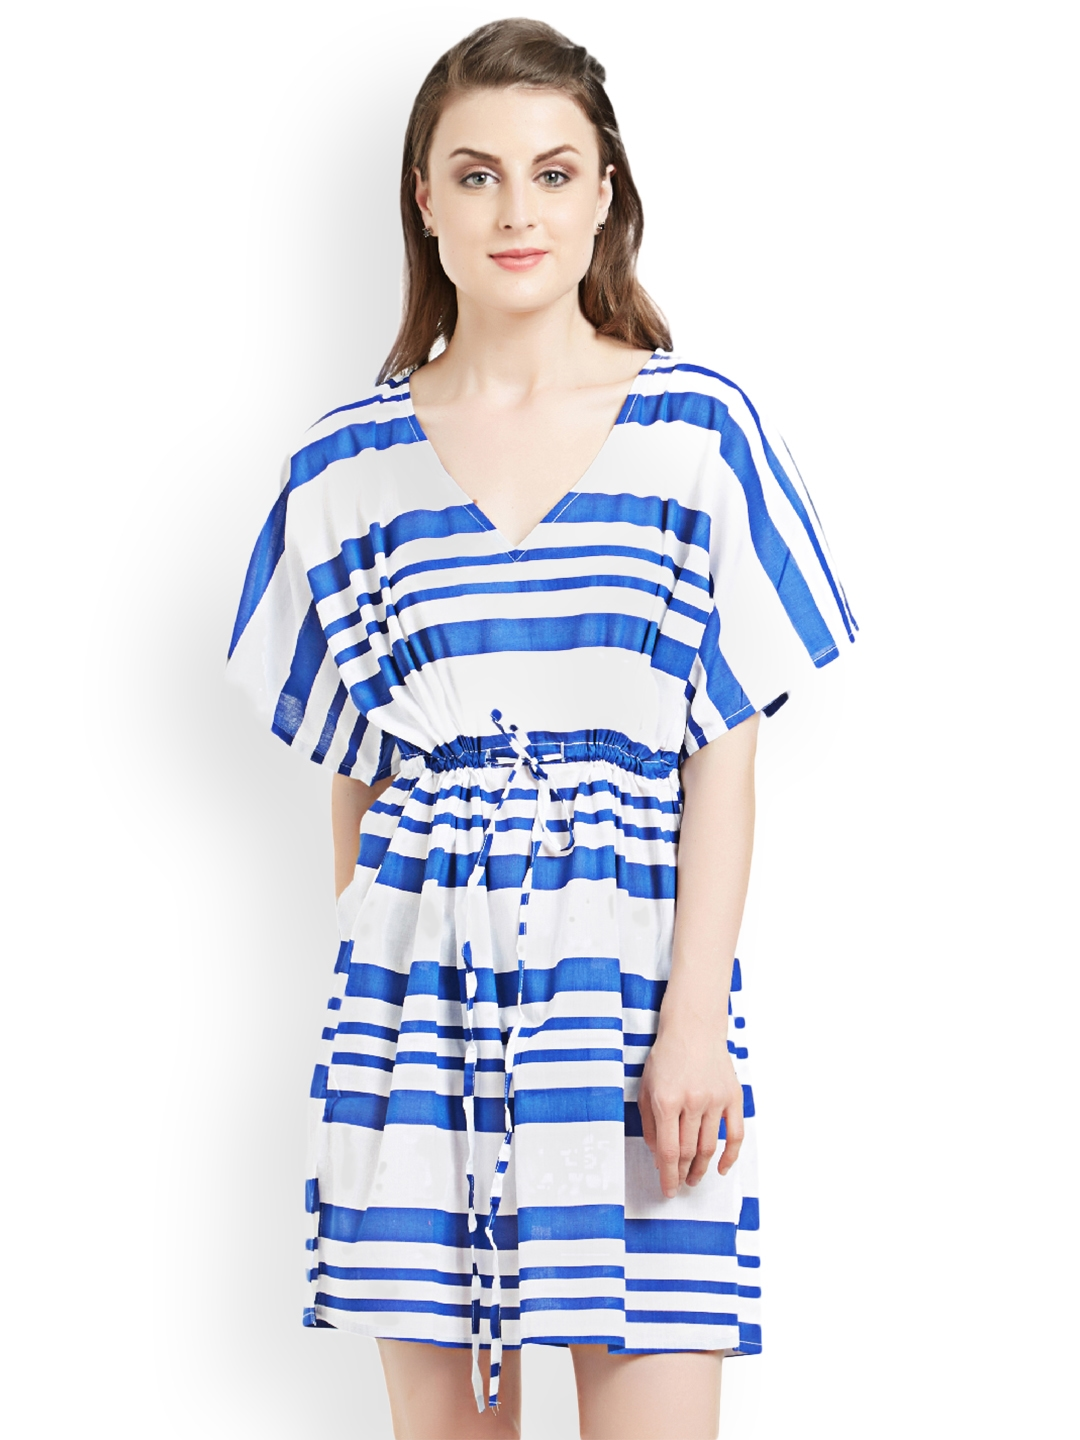 a7946cb290 Buy The Beach Company Women Blue & White Striped Cover Up Dress ...